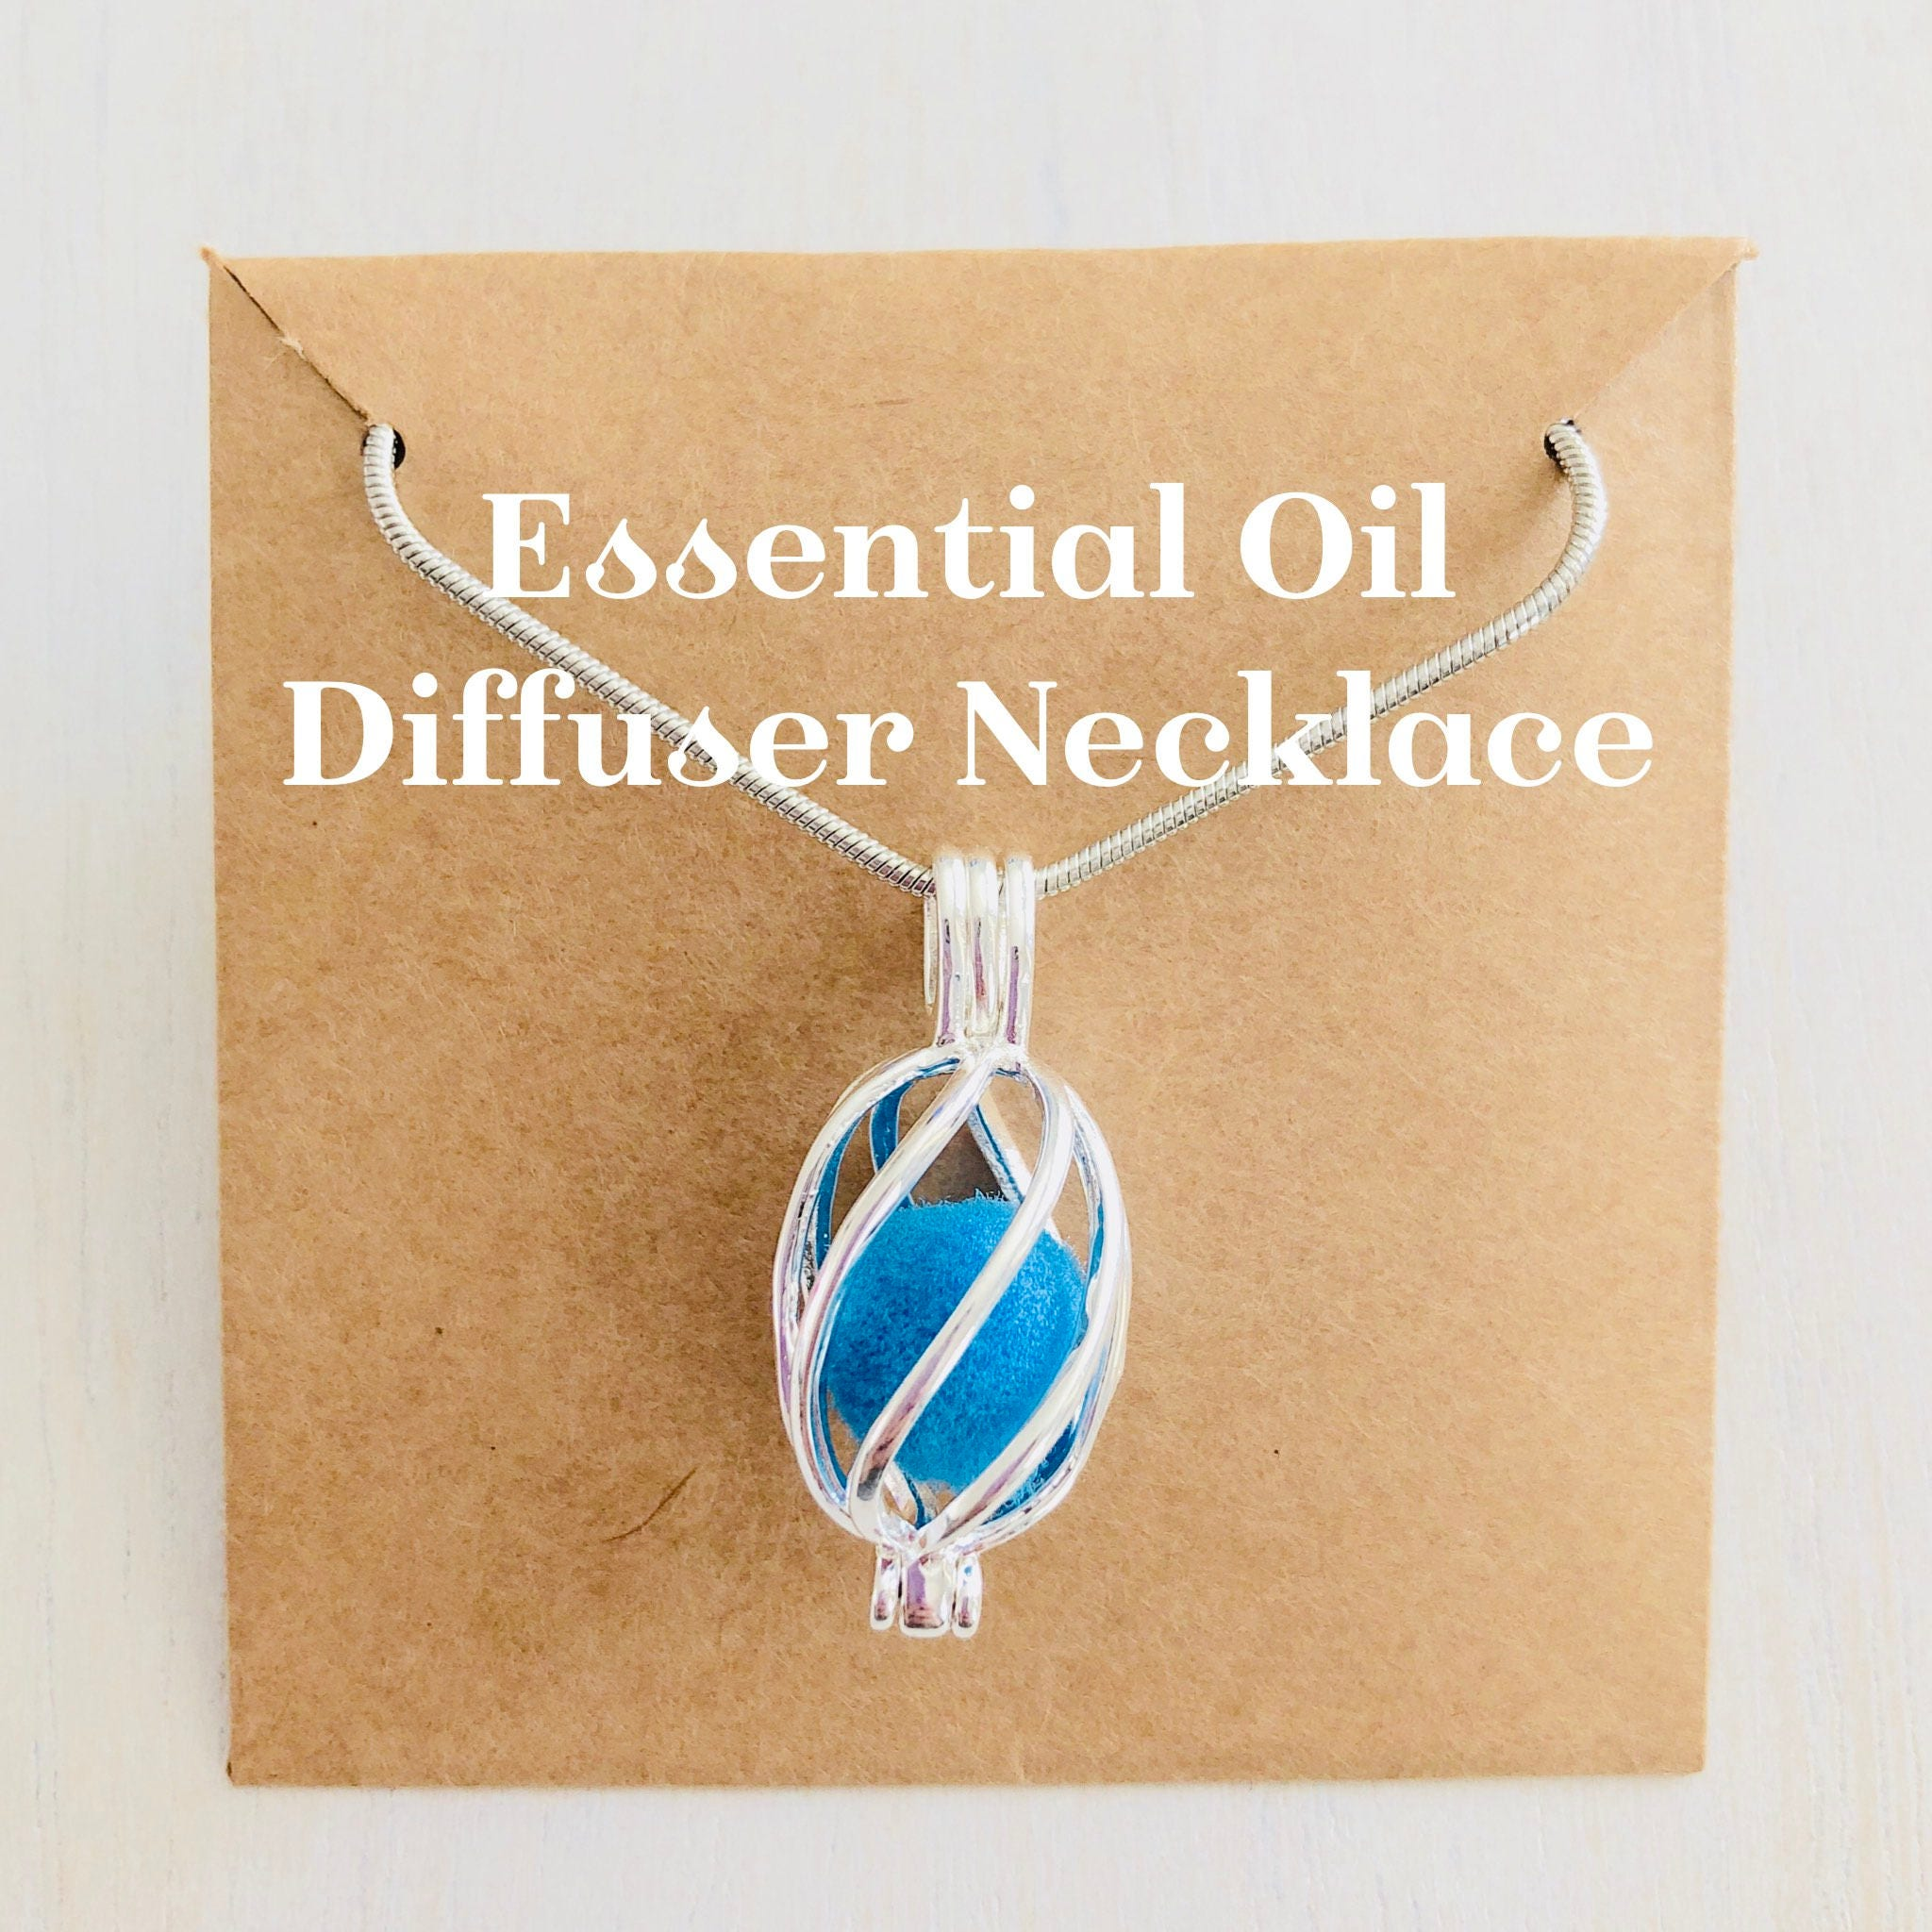 necklace terracotta pendant shop essential izzybell diffuser oil owl